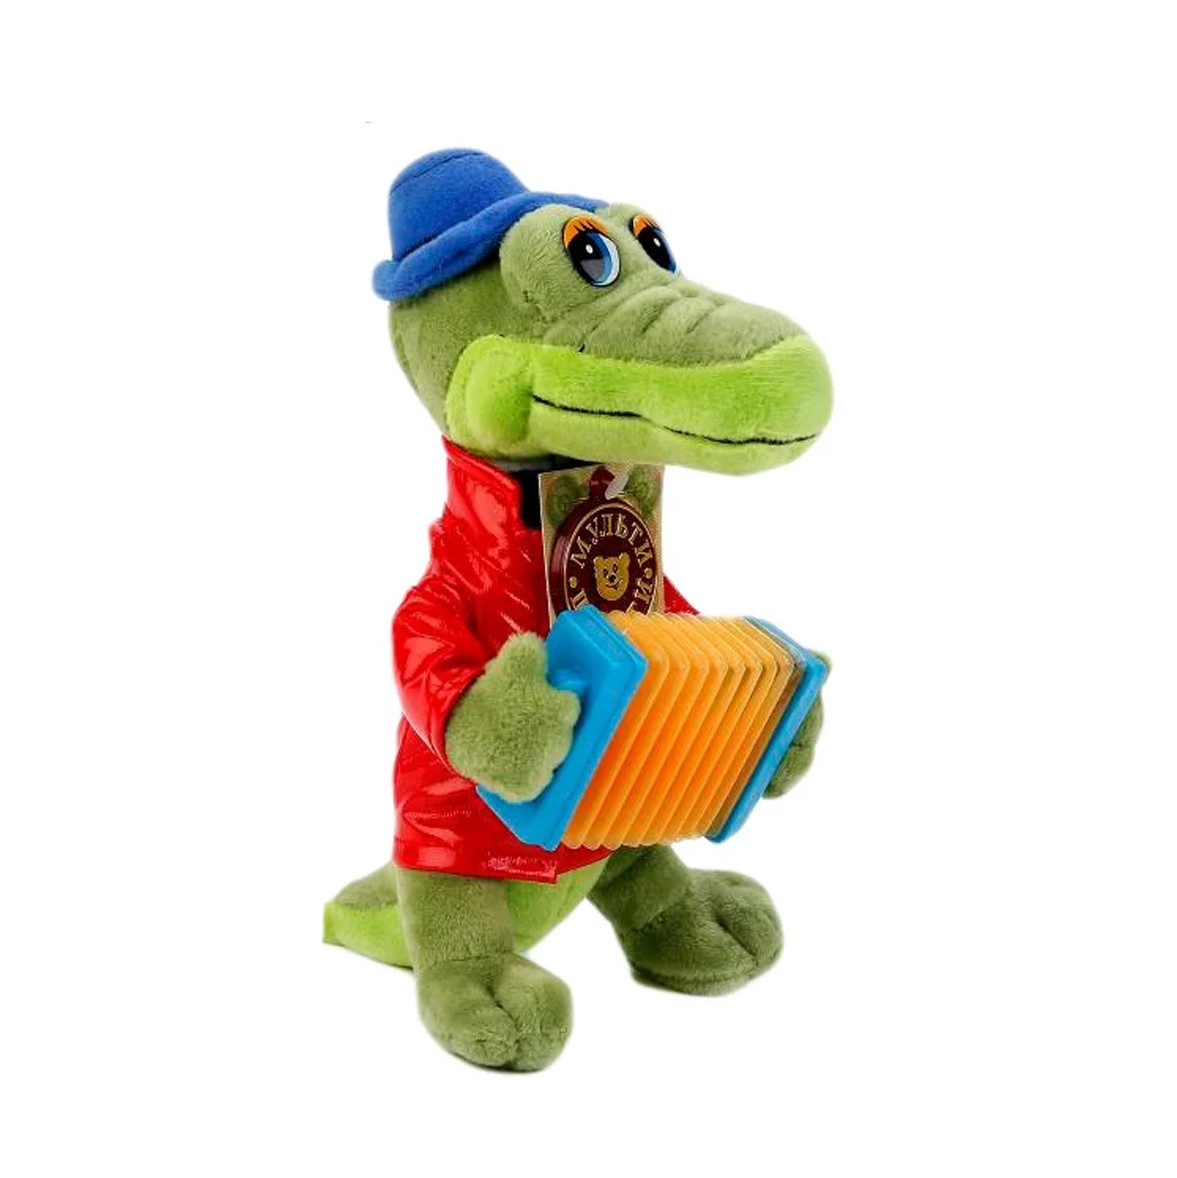 Gena the Crocodile with Accordion Russian Talking and Singing Toy